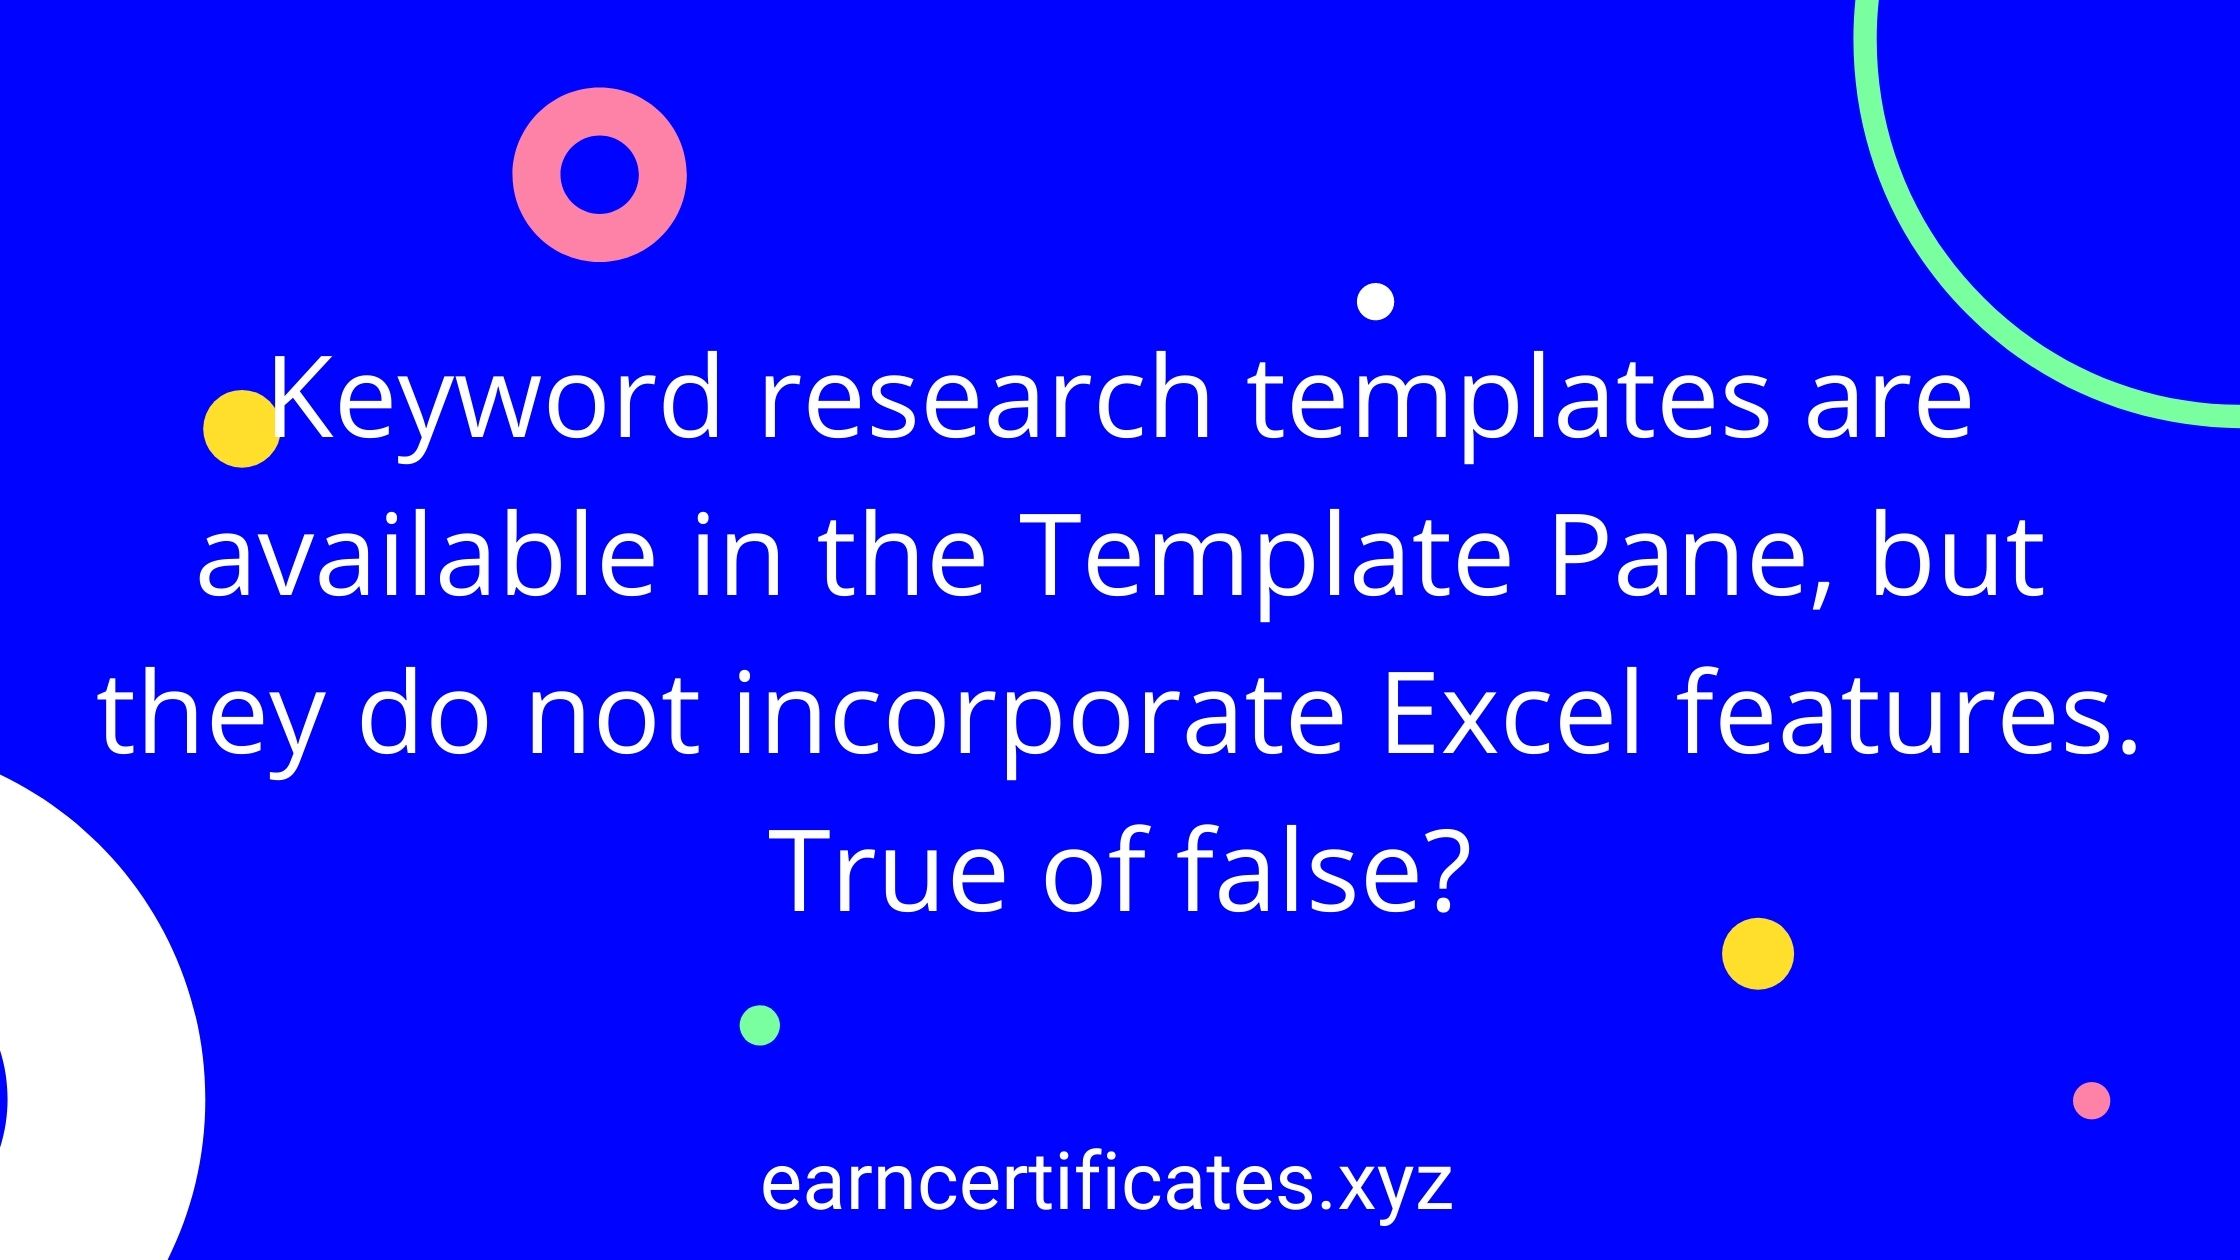 Keyword research templates are available in the Template Pane, but they do not incorporate Excel features. True of false?